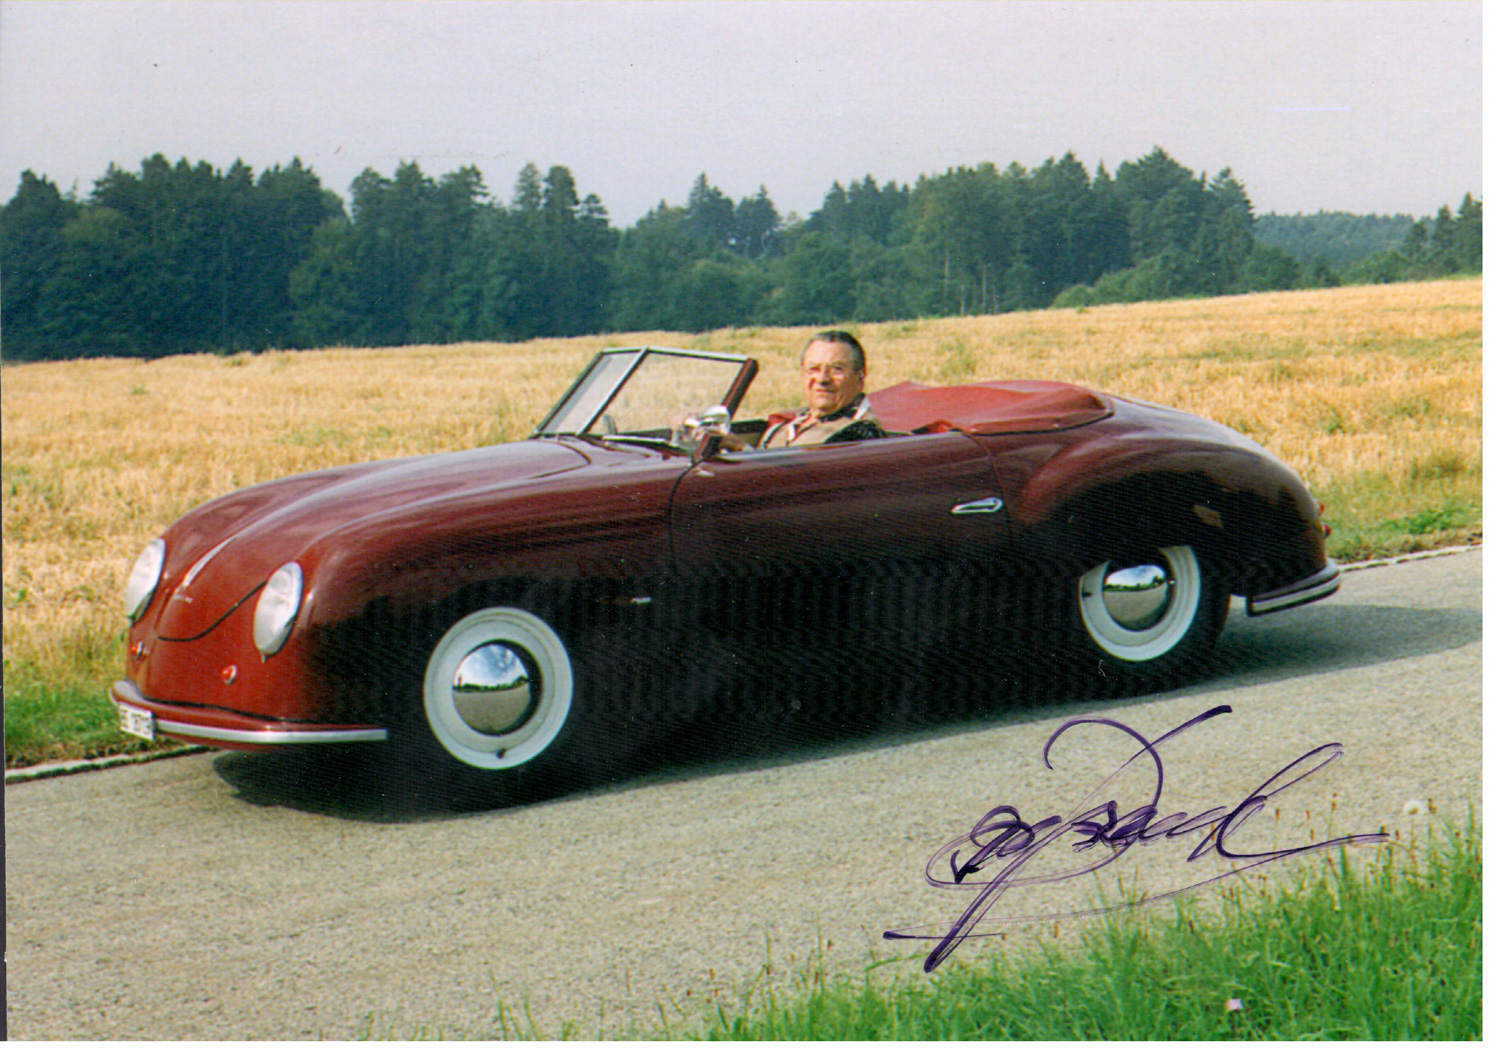 Photo of the Porsche 356/02 003 Beutler convertible signed by Ernst Beutler